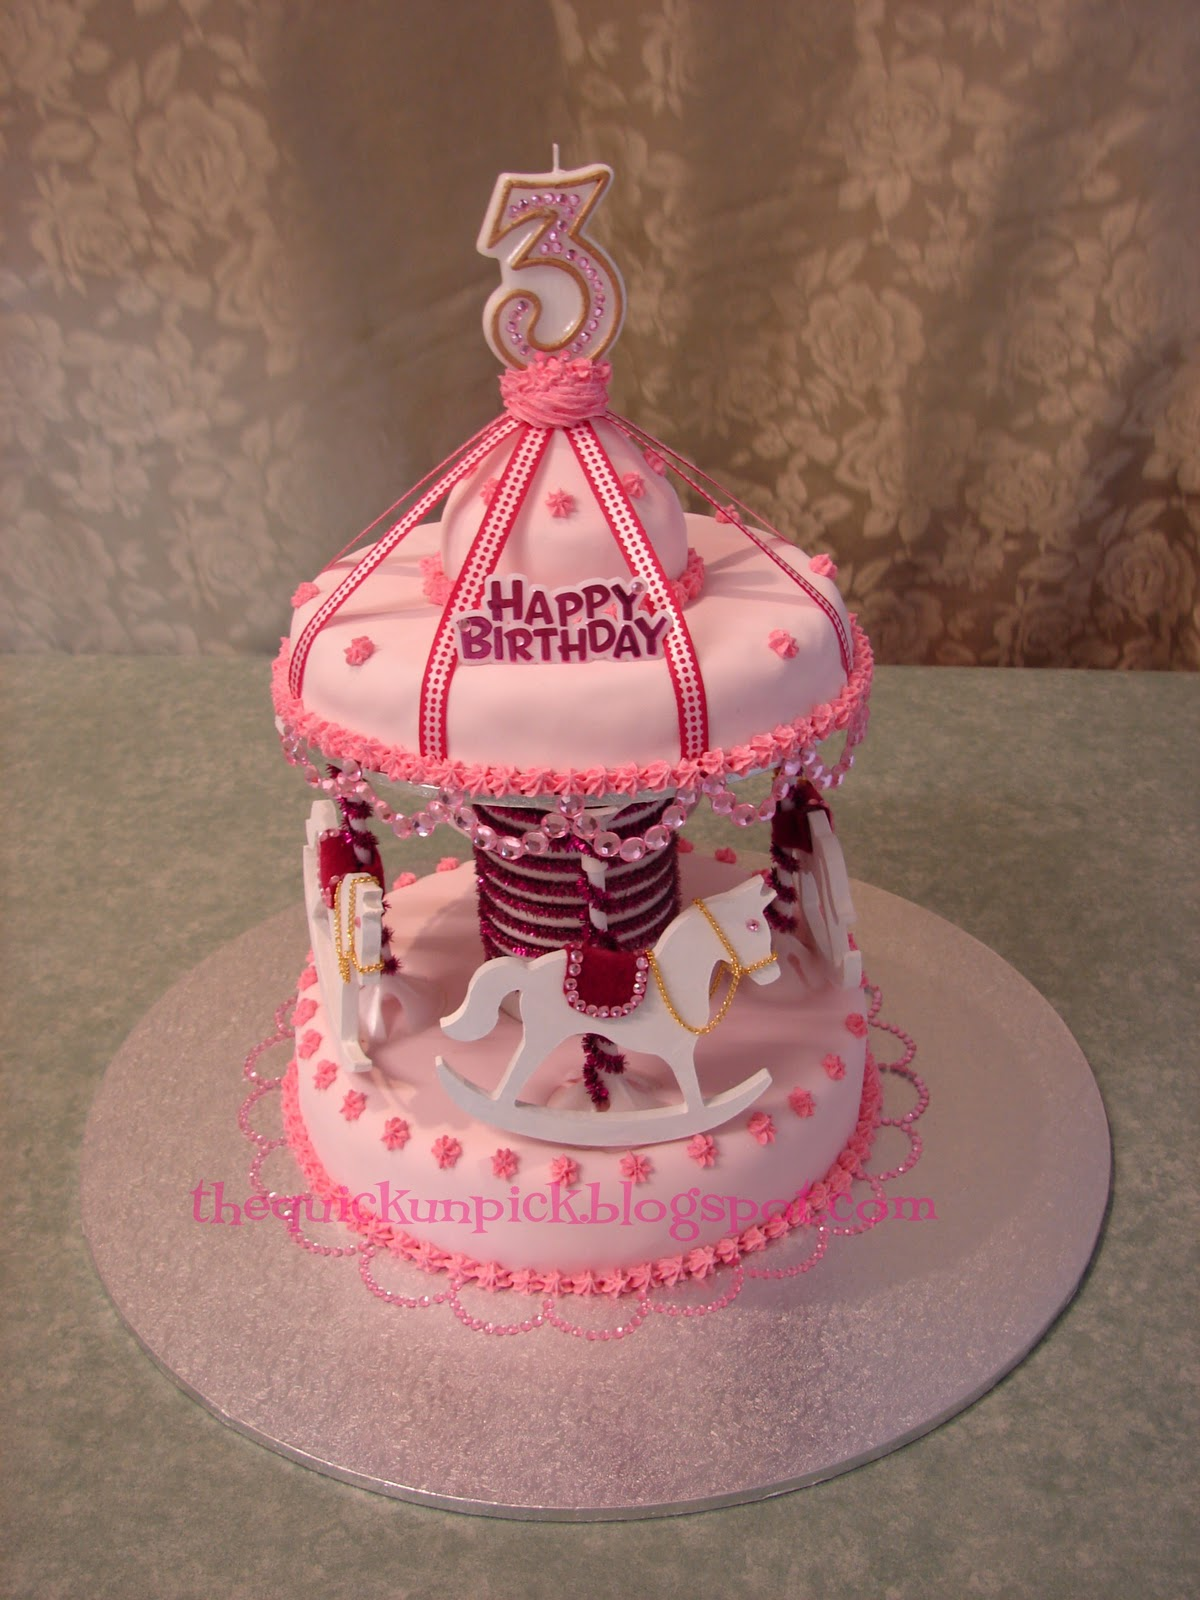 Carousel Birthday Cake http://thequickunpick.blogspot.com/2010/11/beautiful-birthday-cakes-princesses.html